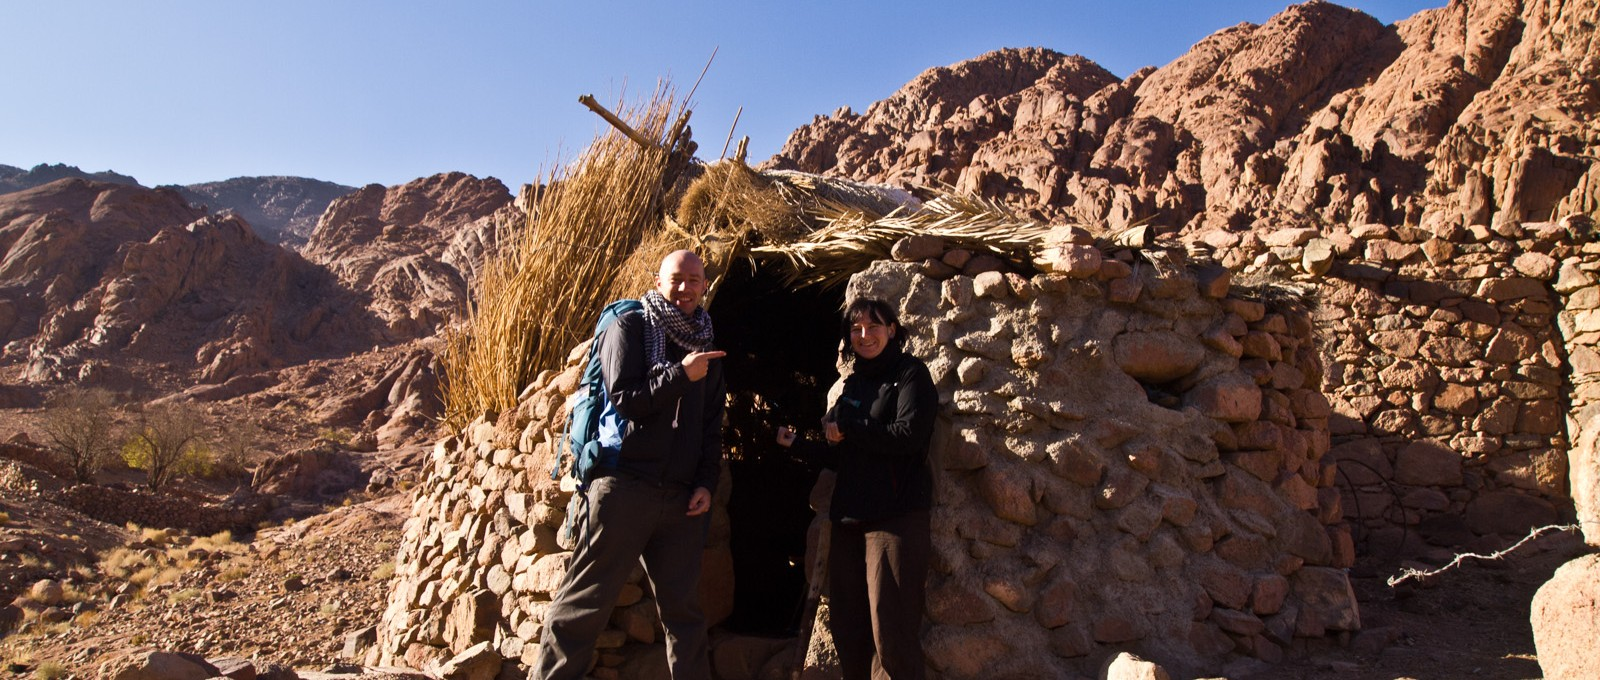 Dru And I Sleeping Hut, St Catherines, Egypt